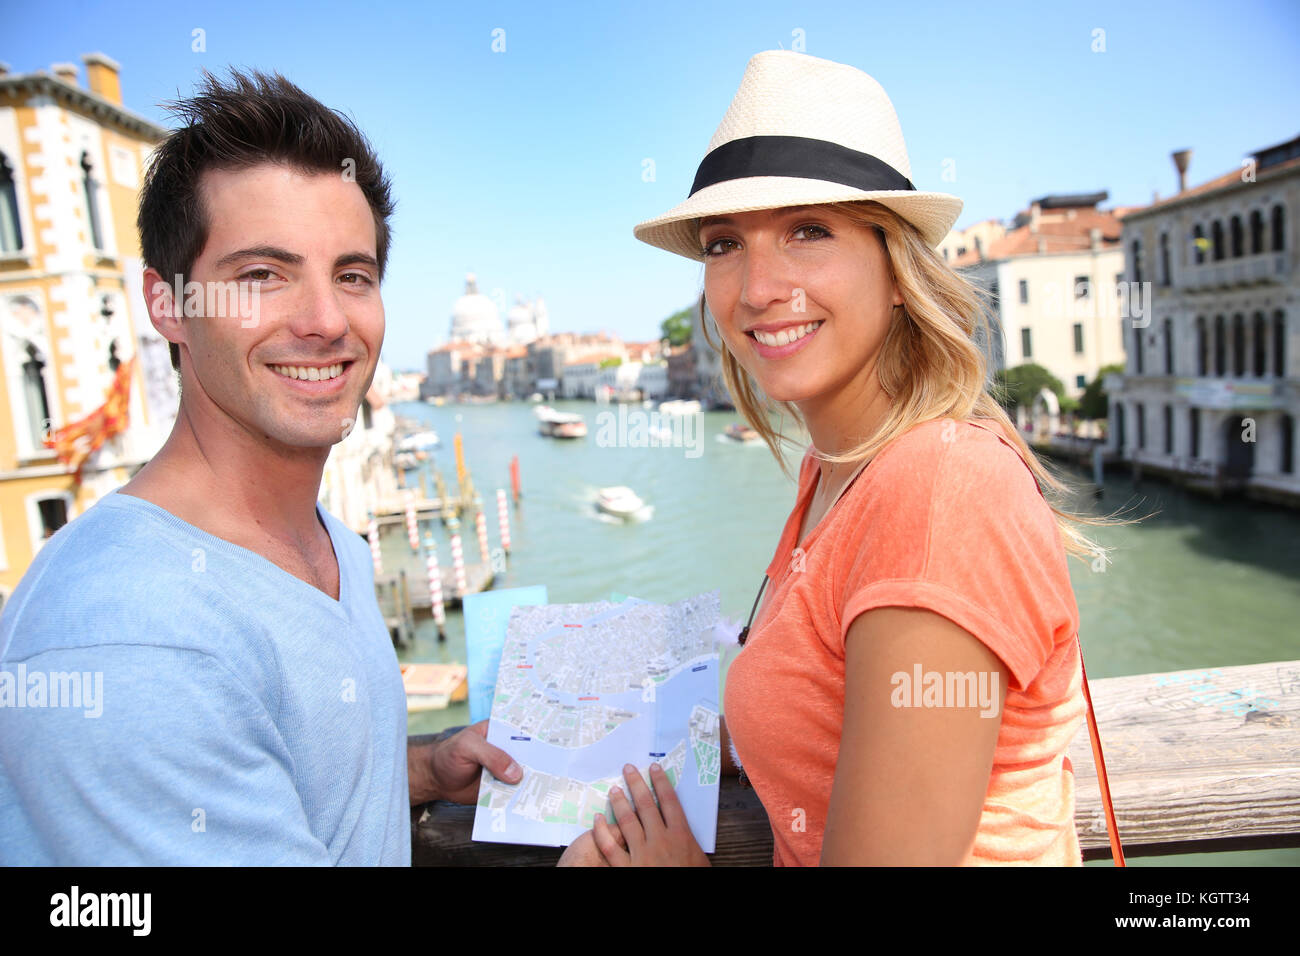 Couplelooking at map on the Academia Bridge in Venice, Italy - Stock Image